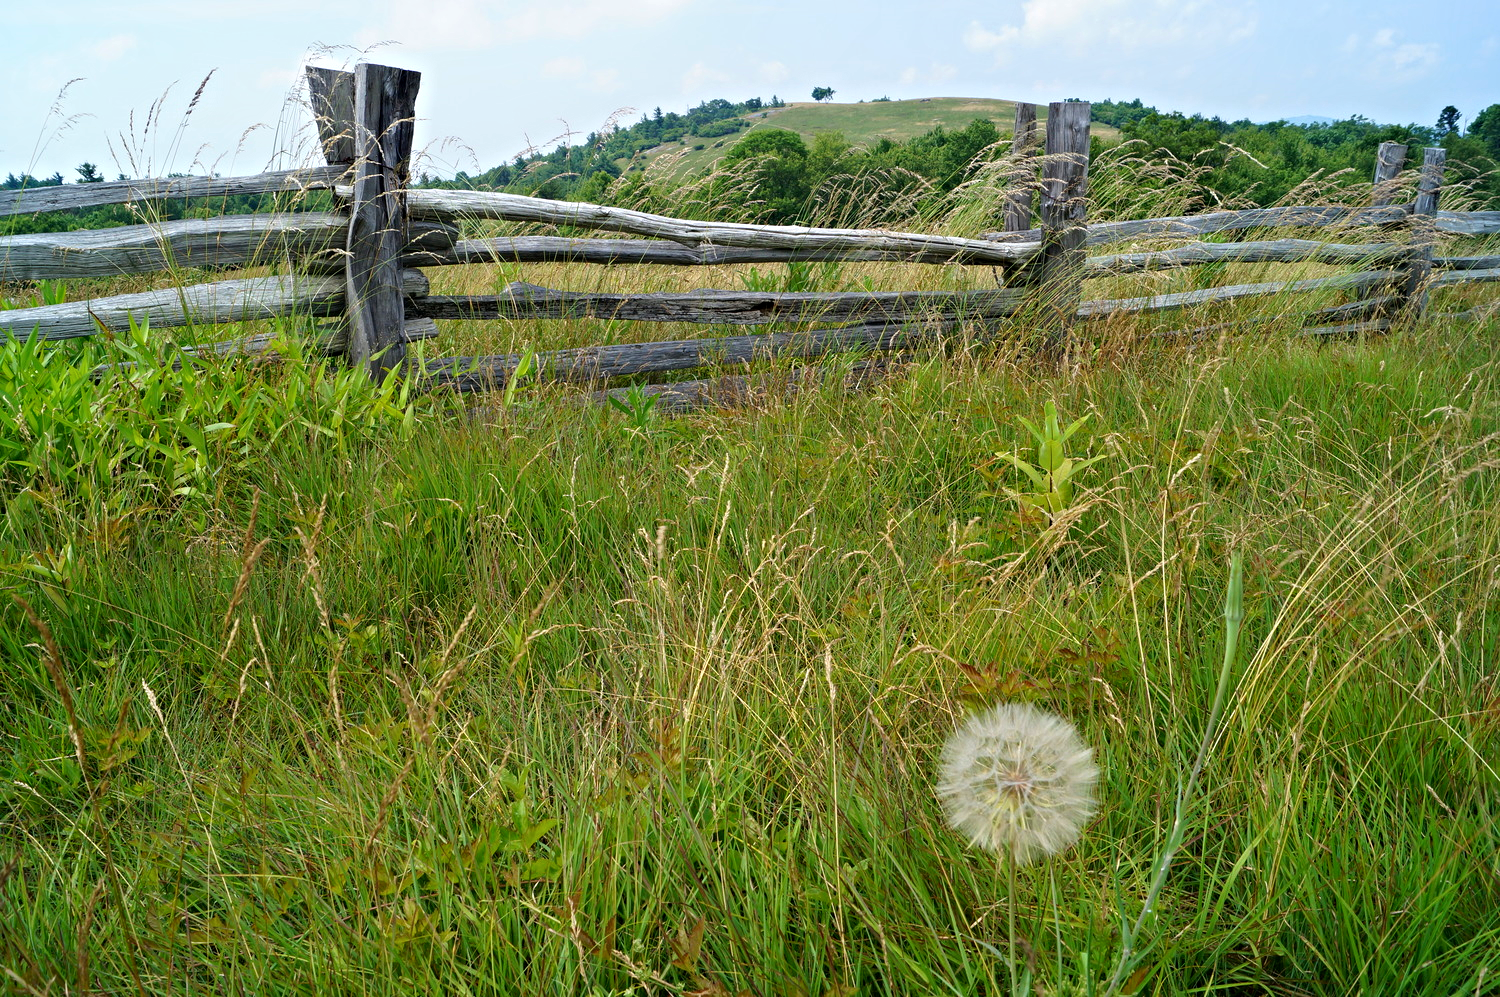 A single Giant Fluffy Dandelion. Where is it? Why is it the only one? A dramatic picture tells a story, and draws the viewer into it.